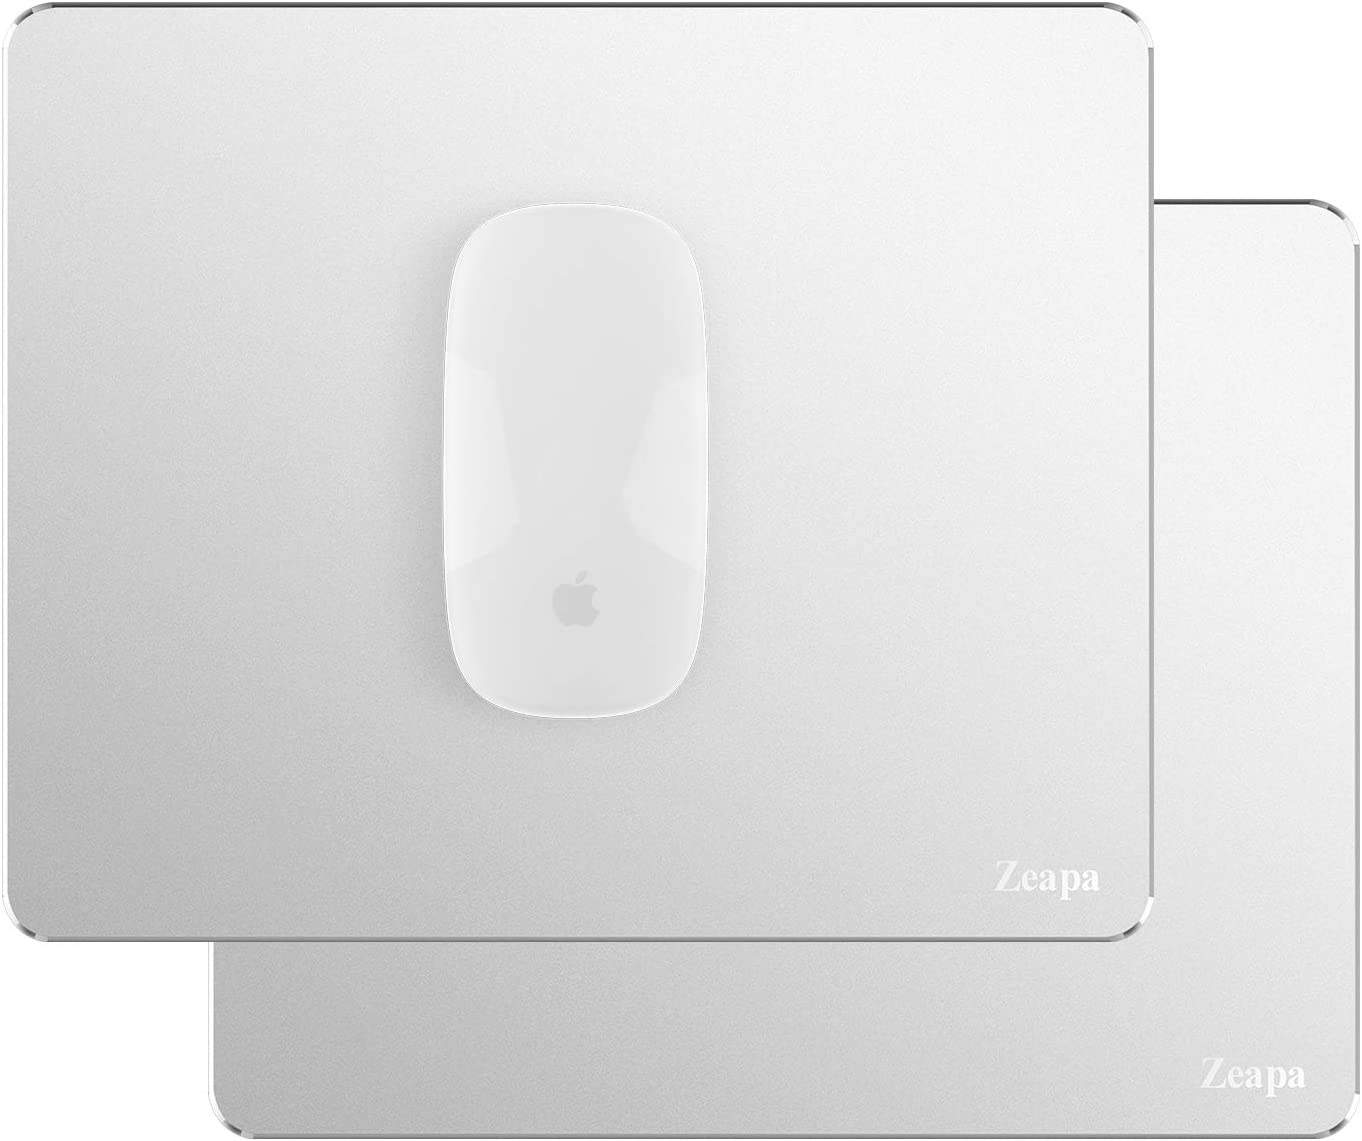 Ultra-Quiet Sleek Thin Non-Slip Hard Silver Metal Aluminum Apple Mouse Pad, Rubber Bottom, Clean and Sanitize Easily, Waterproof, 8.7x7.1in, 2-Pack